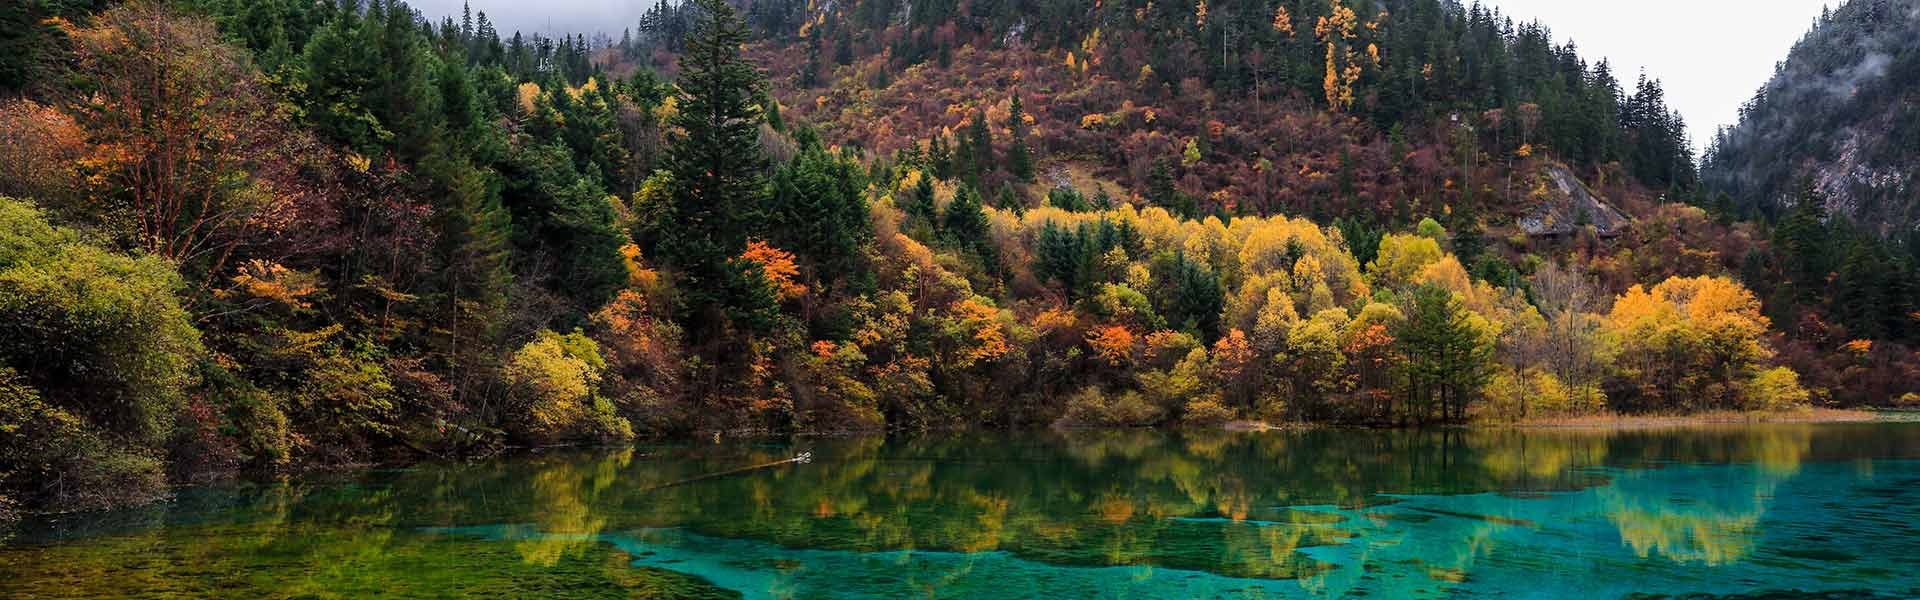 Experience Brand New Sichuan Tour Routes